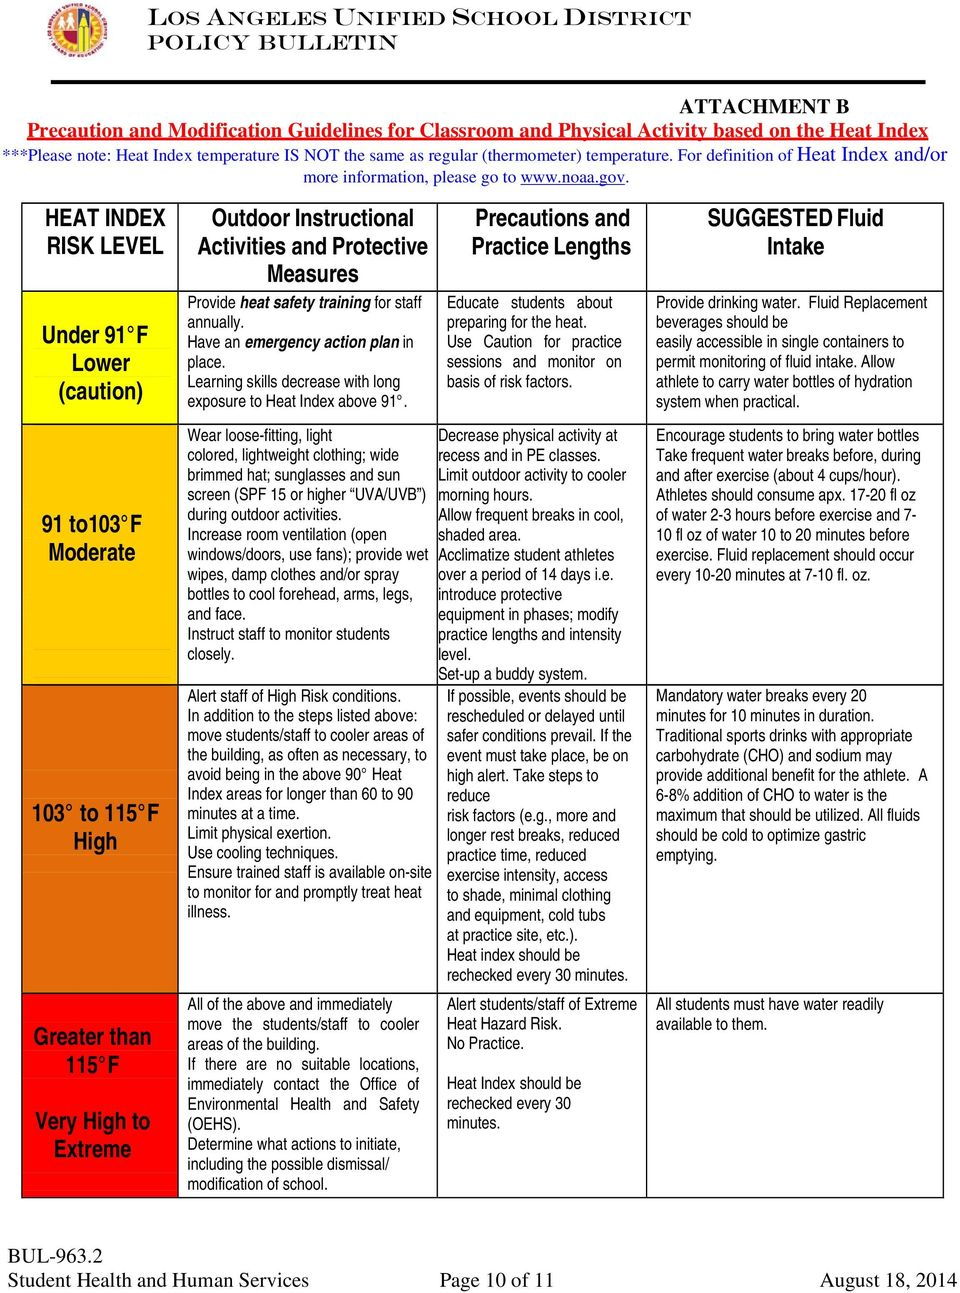 HEAT INDEX RISK LEVEL Under 91 F Lower (caution) Outdoor Instructional Activities and Protective Measures Provide heat safety training for staff annually. Have an emergency action plan in place.